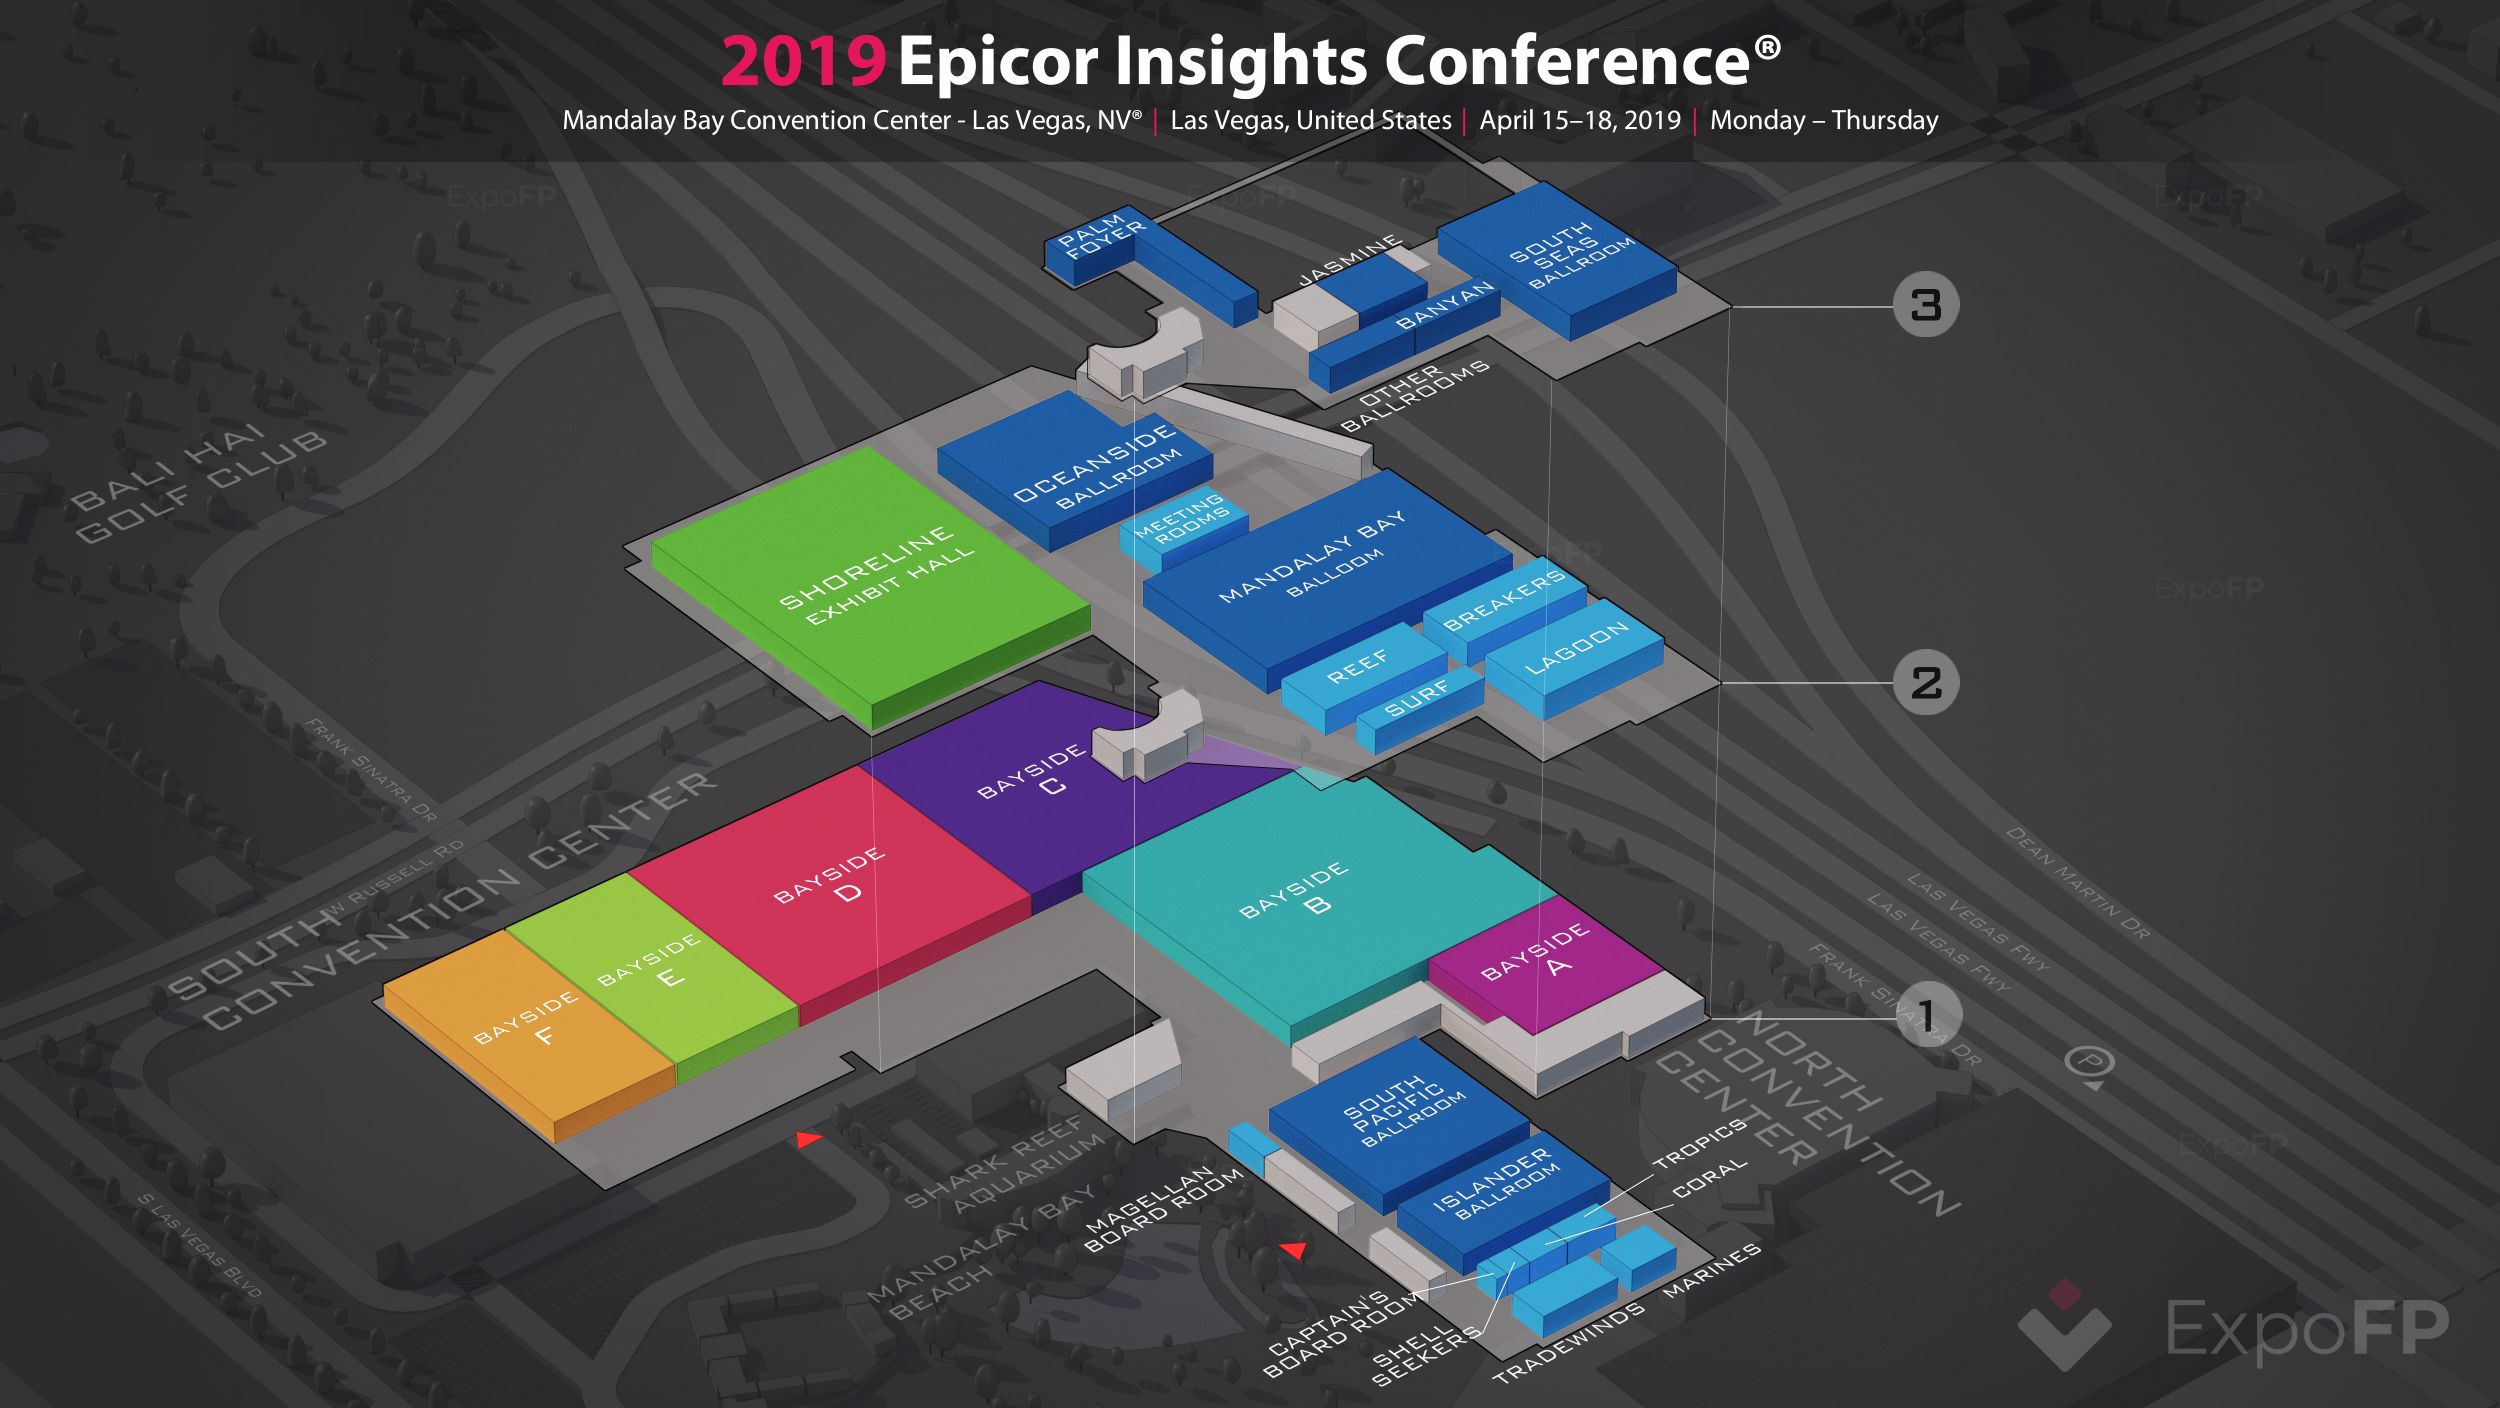 Las Vegas Convention Center Map, Epicor Insights Conference 2019 3d Floor Plan, Las Vegas Convention Center Map